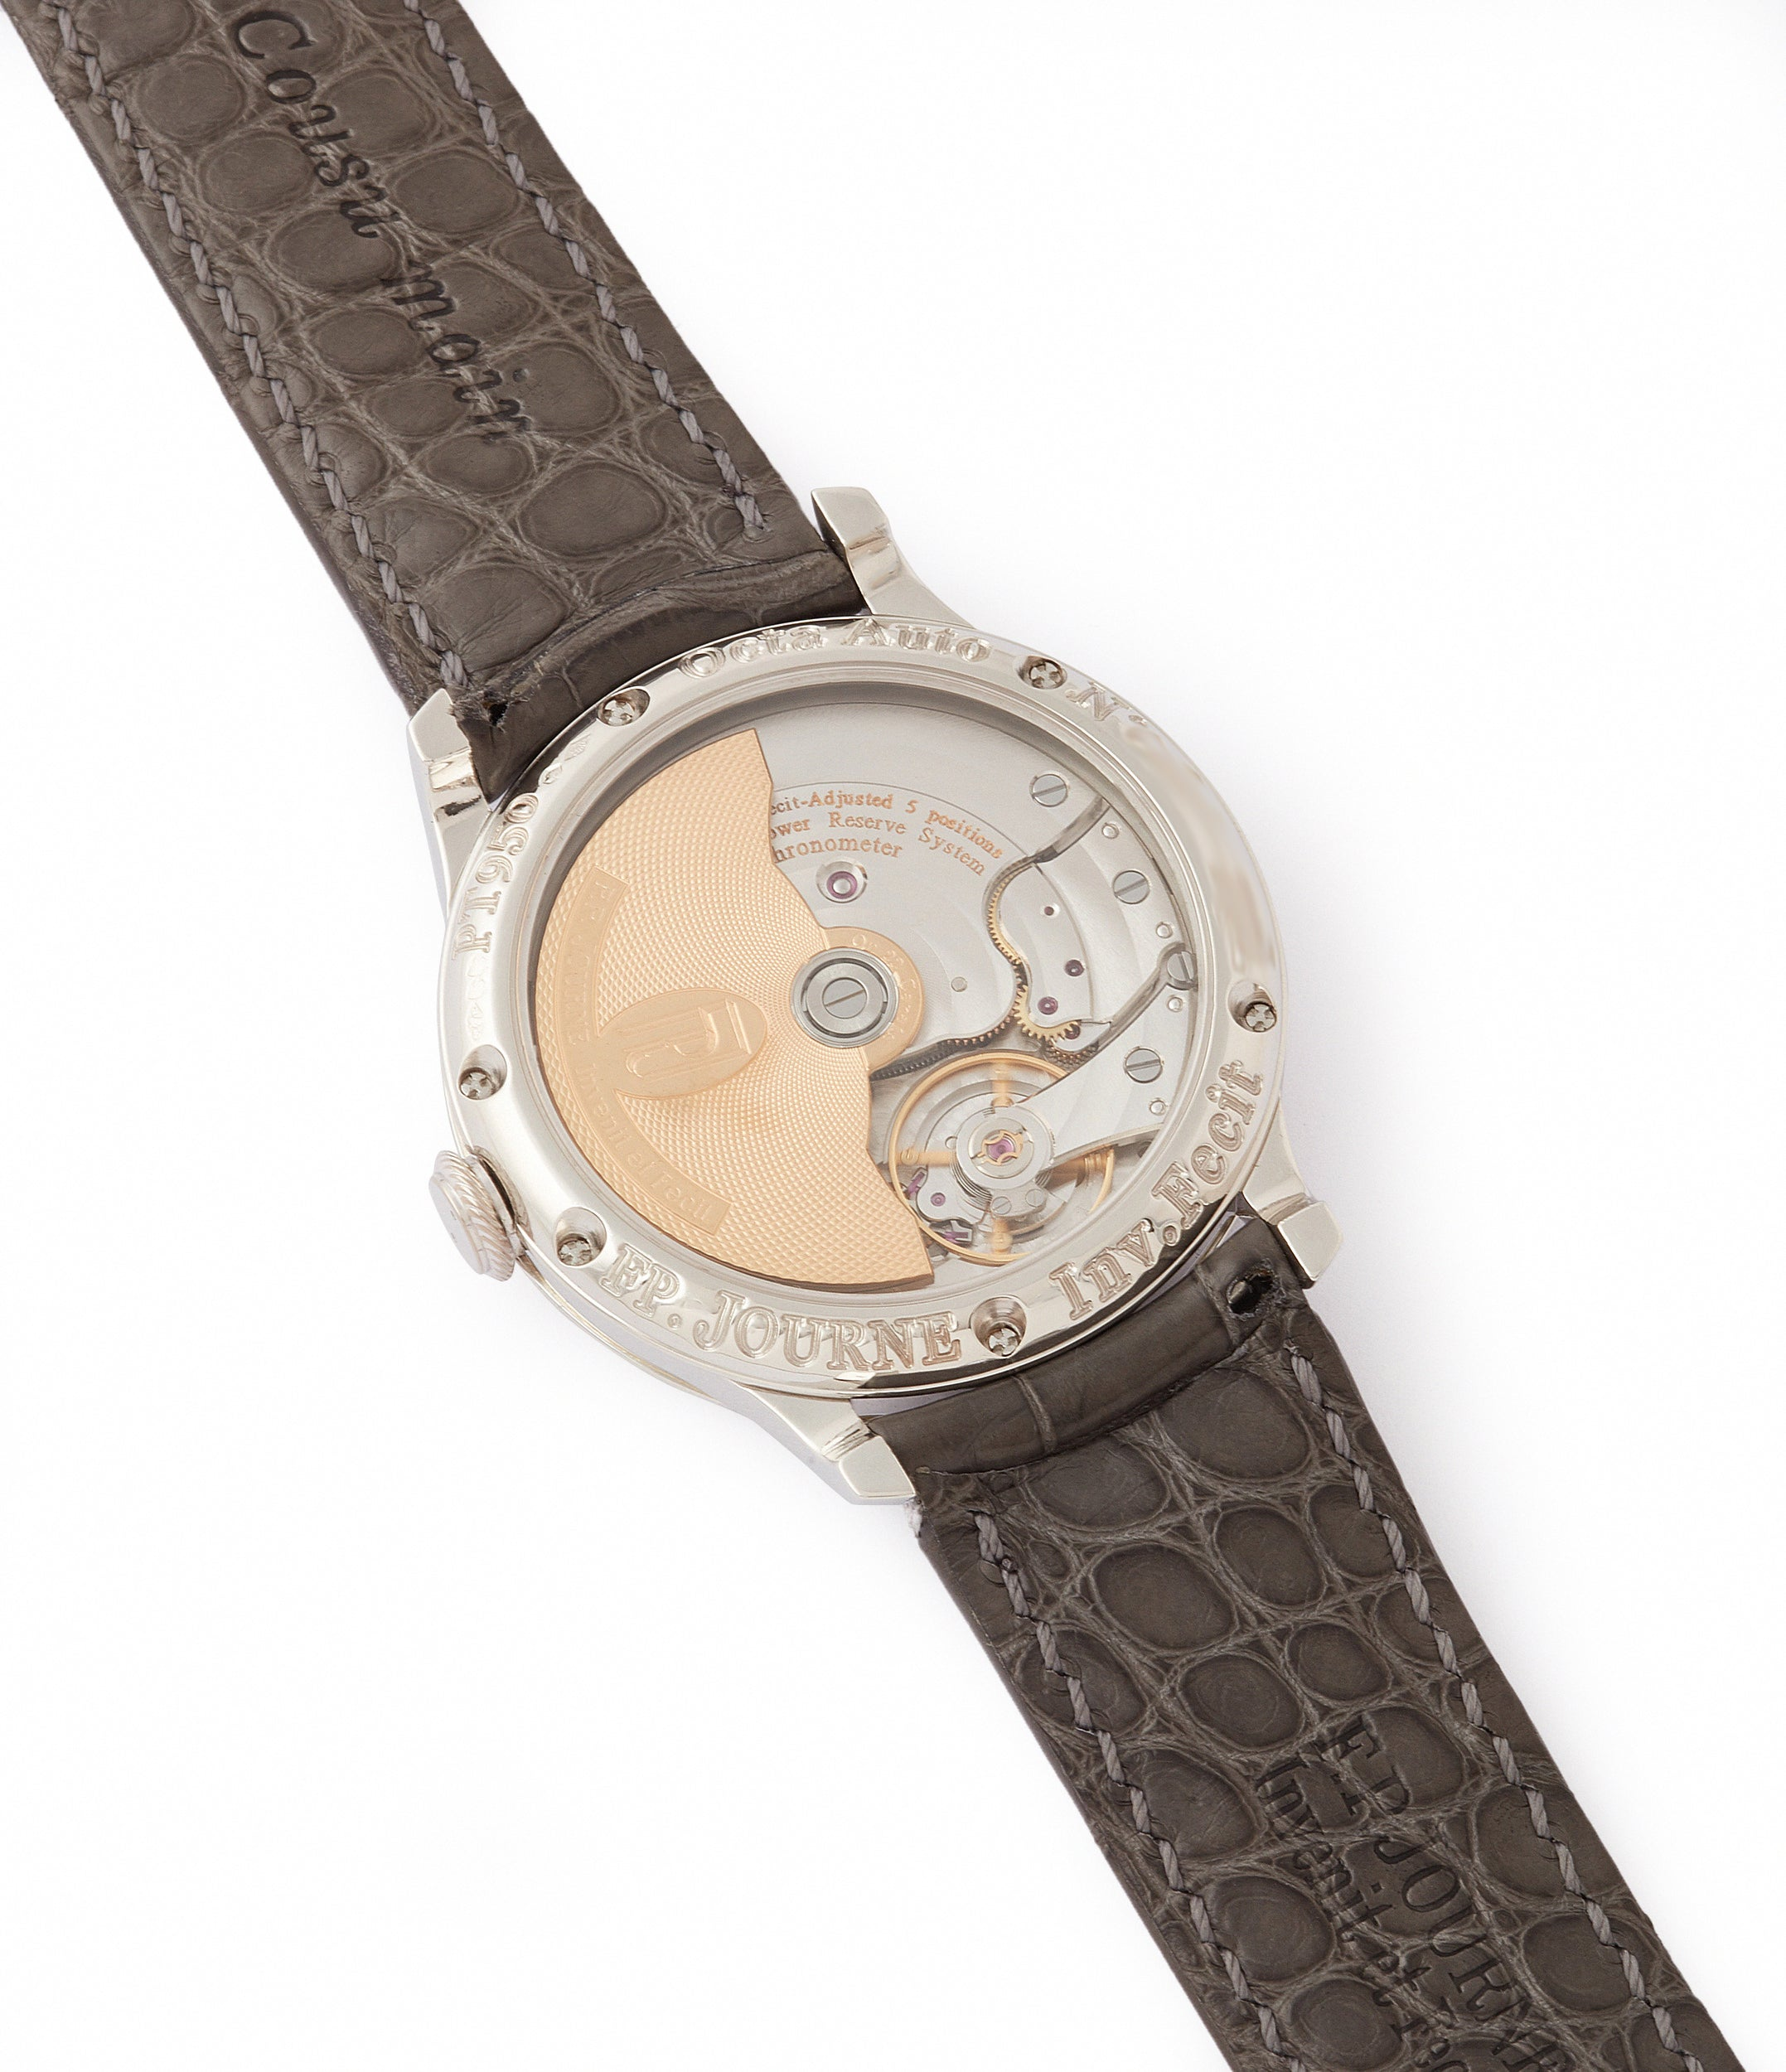 1300.3 calibre early brass movement F. P. Journe Octa Lune 061-03L platinum rare watch for sale online at A Collected Man London specialist of independent watchmakers